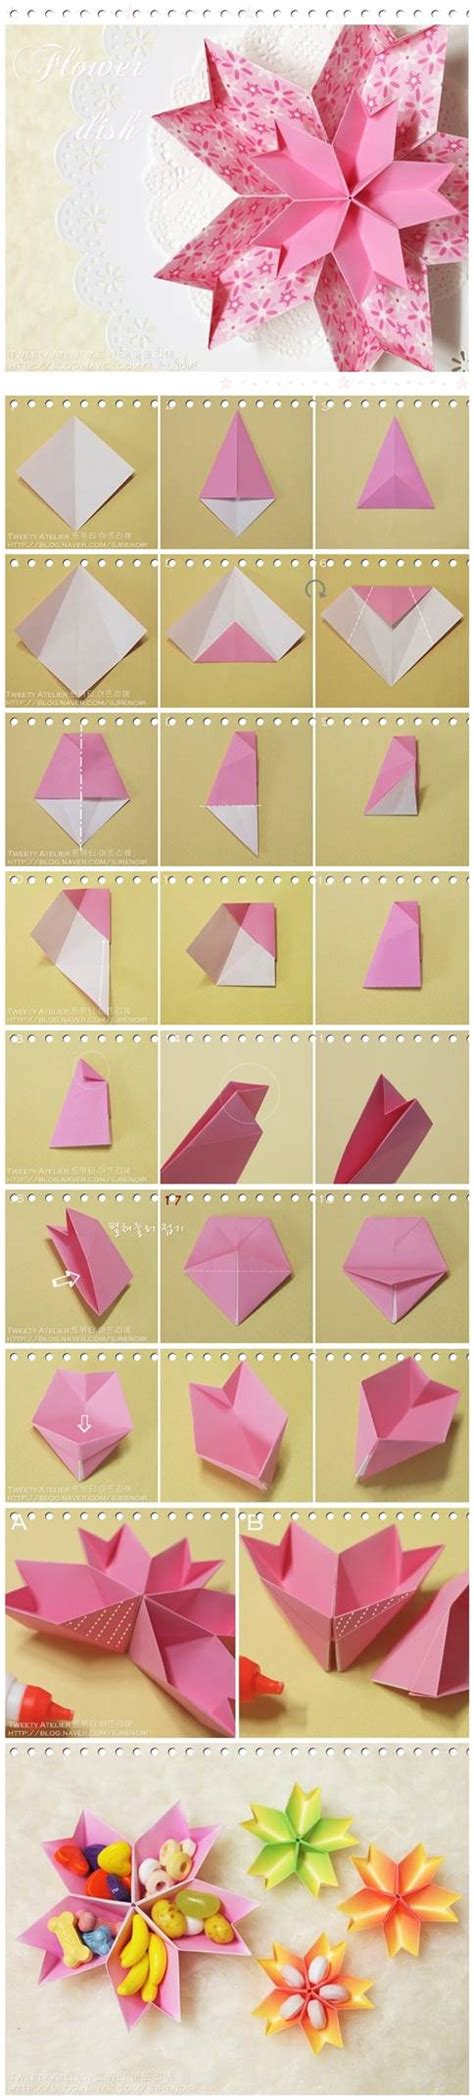 How To Make Paper Flowers Step By Step Easy - how to make origami flowers step by step breeds picture